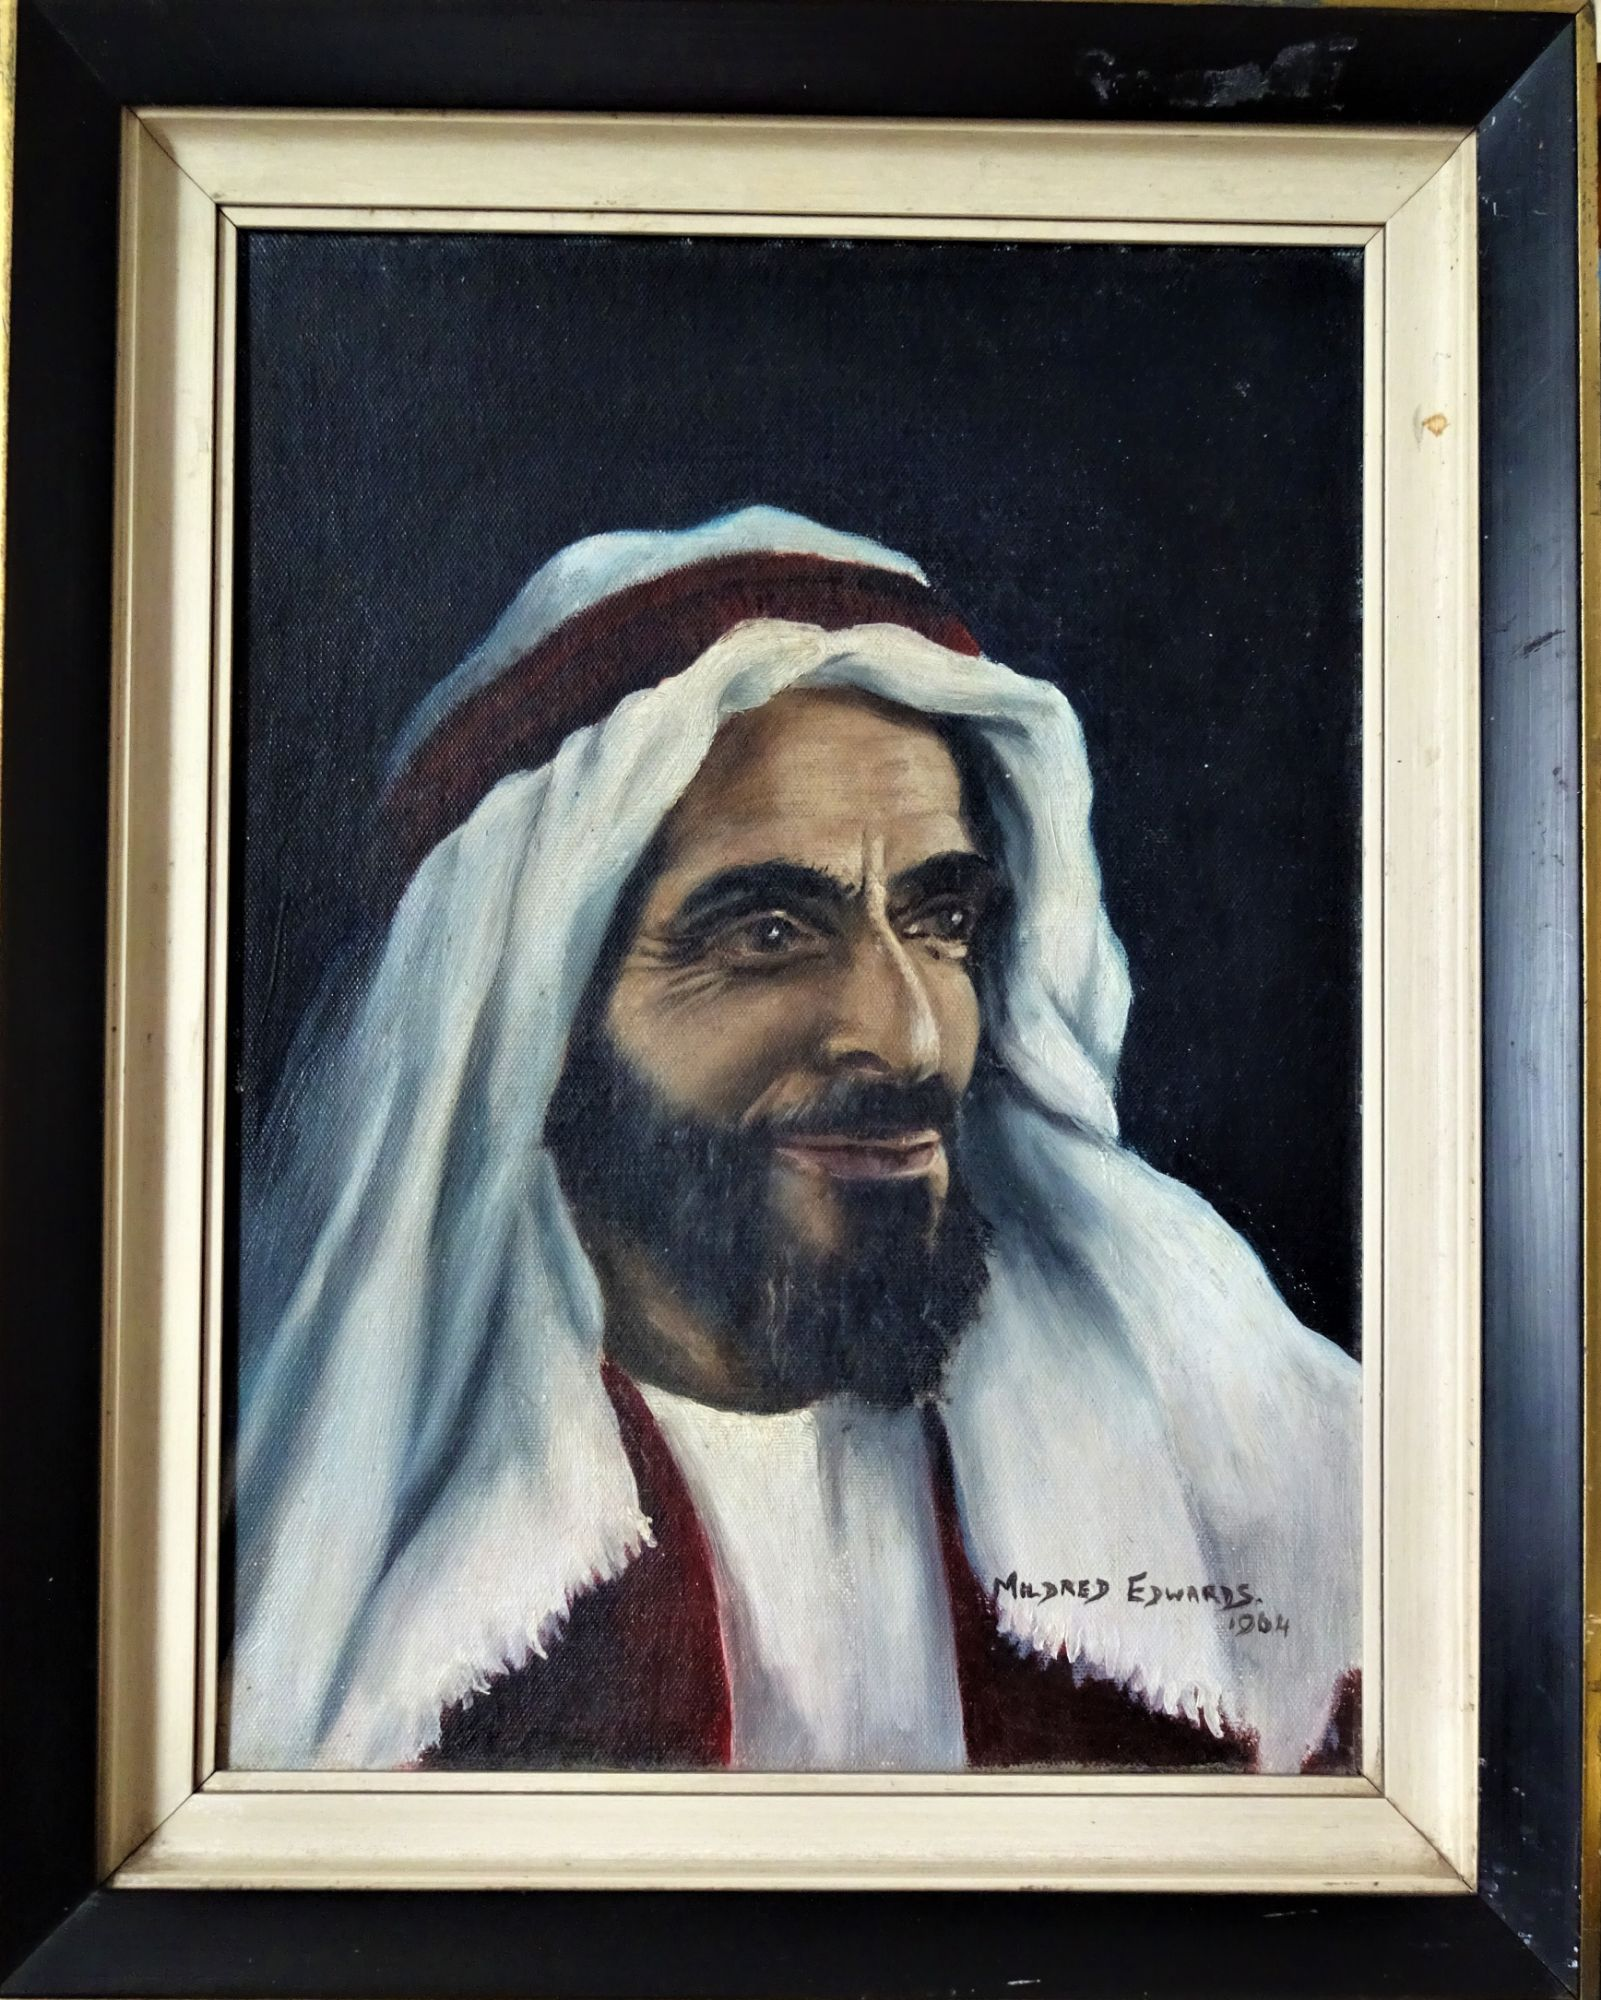 Shakhbut bin Sultan al Nahyan, oil on boiard, signed Mildred Edwards, 1964.  Framed.